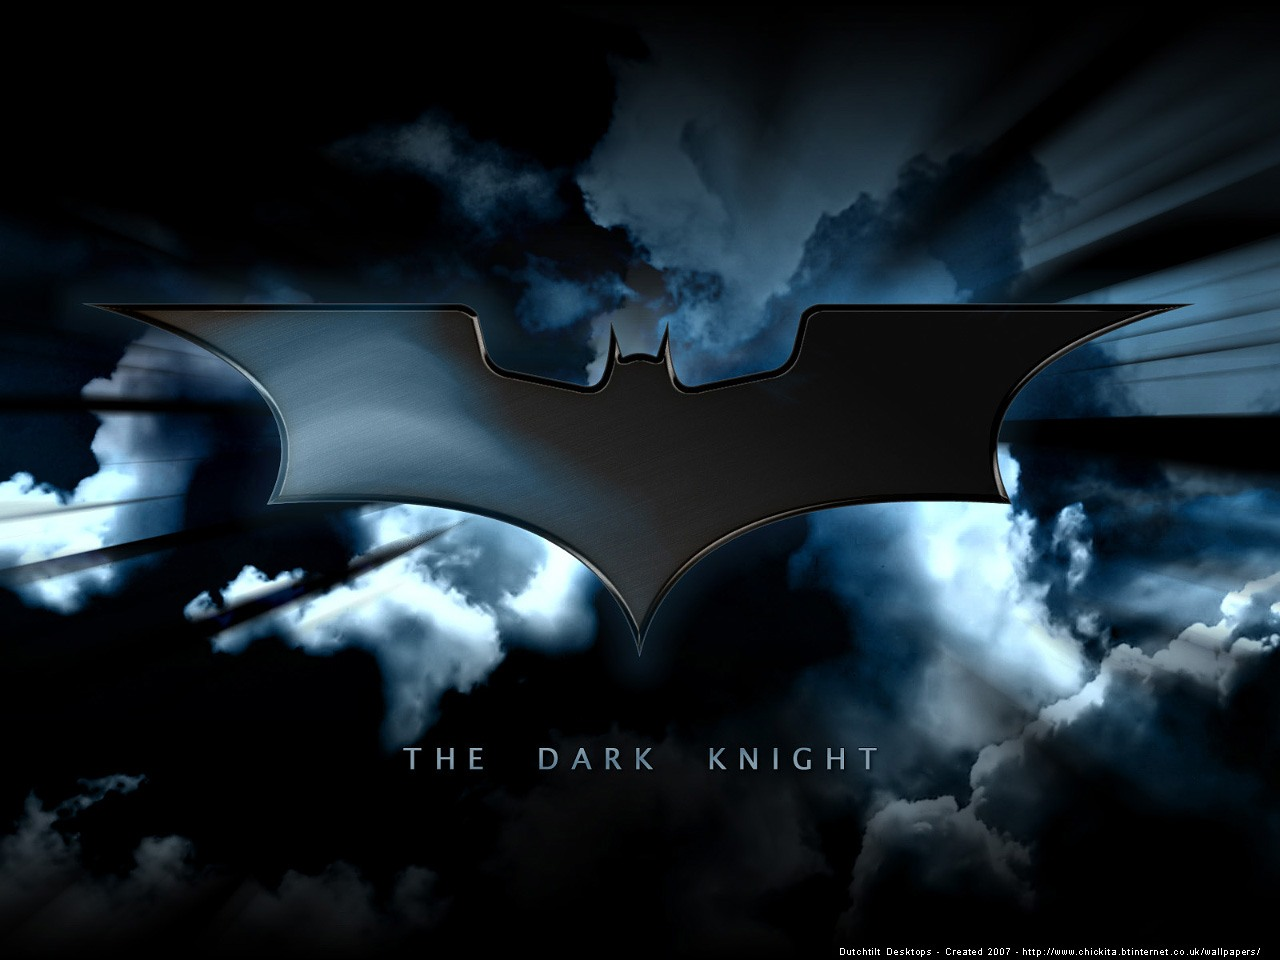 the dark knight wallpaper bonjoviarchives 1280x960